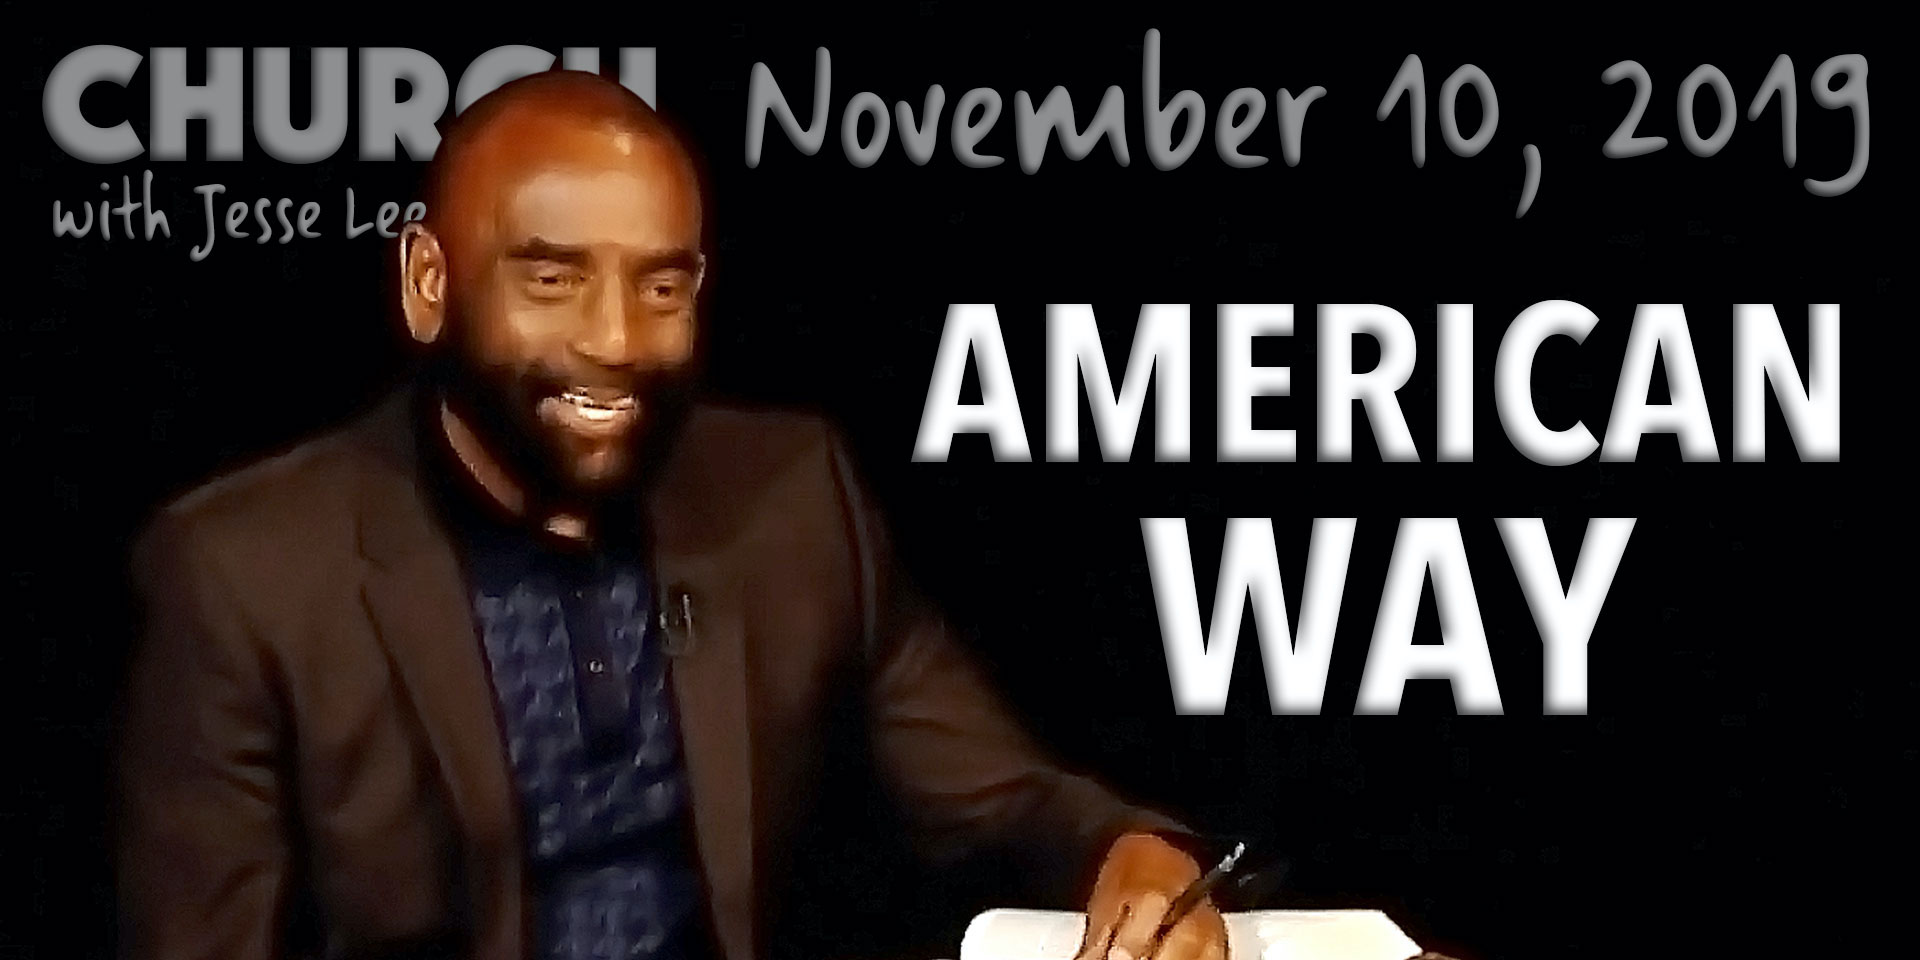 American Way (Church, Nov 10, 2019)